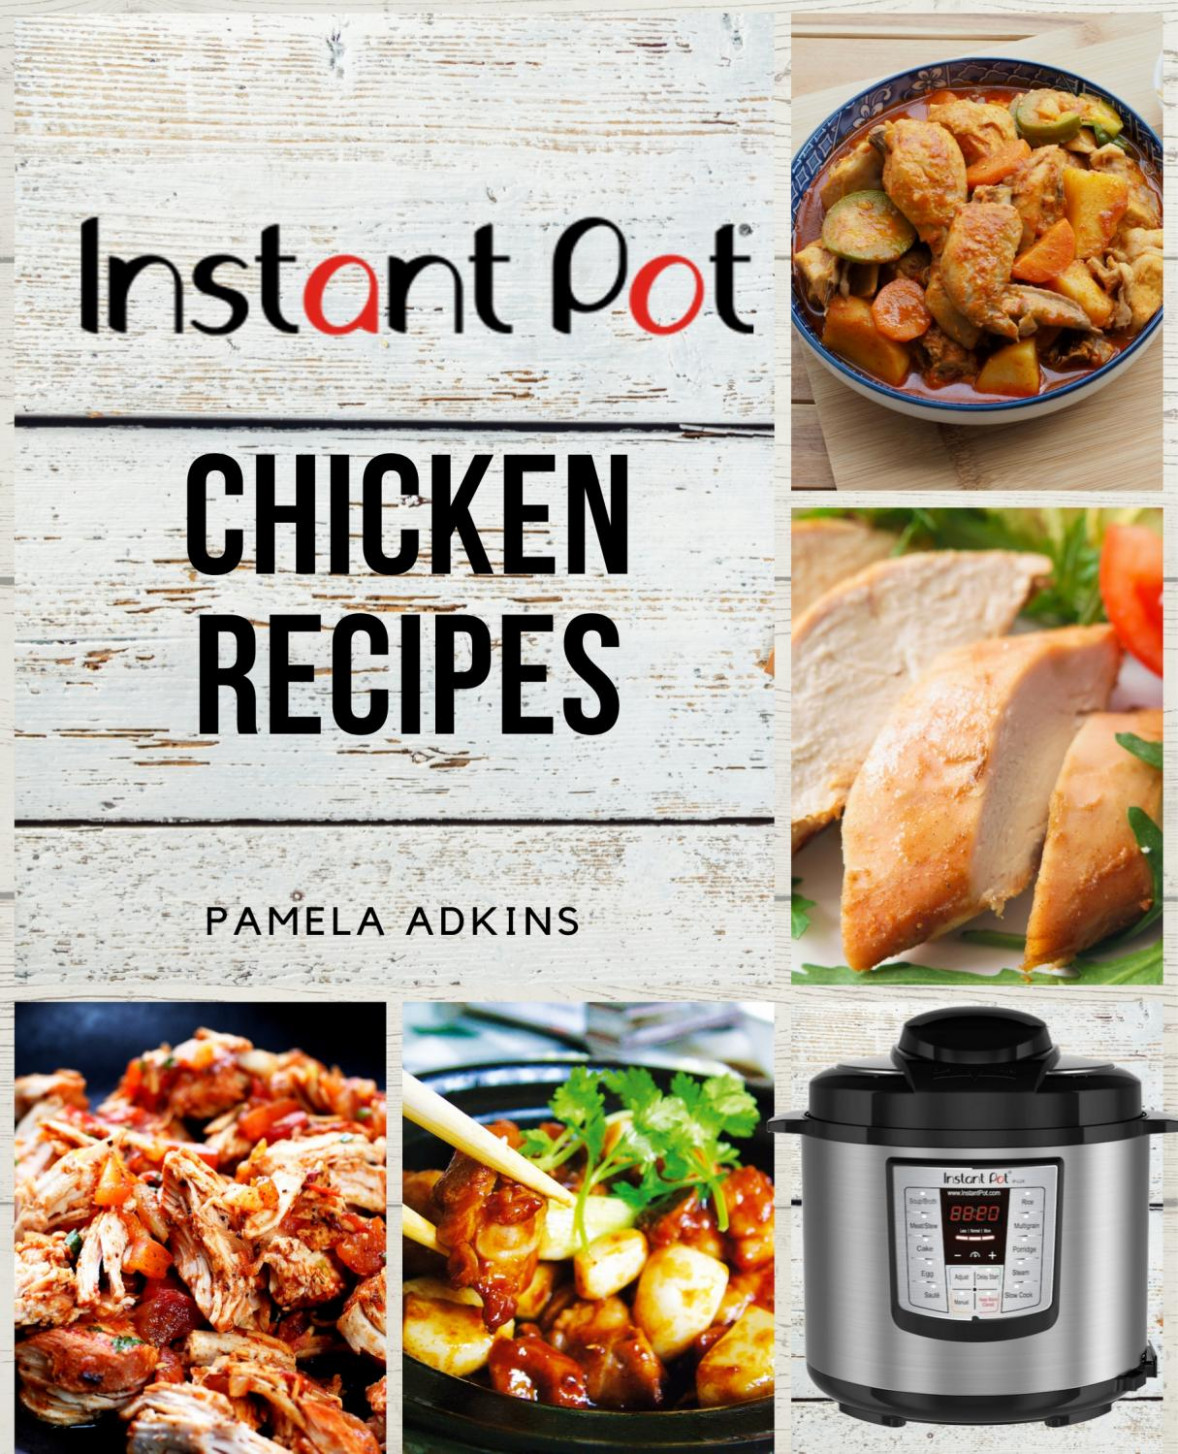 Instant Pot Chicken Recipes: Quick And Easy Delicious ..